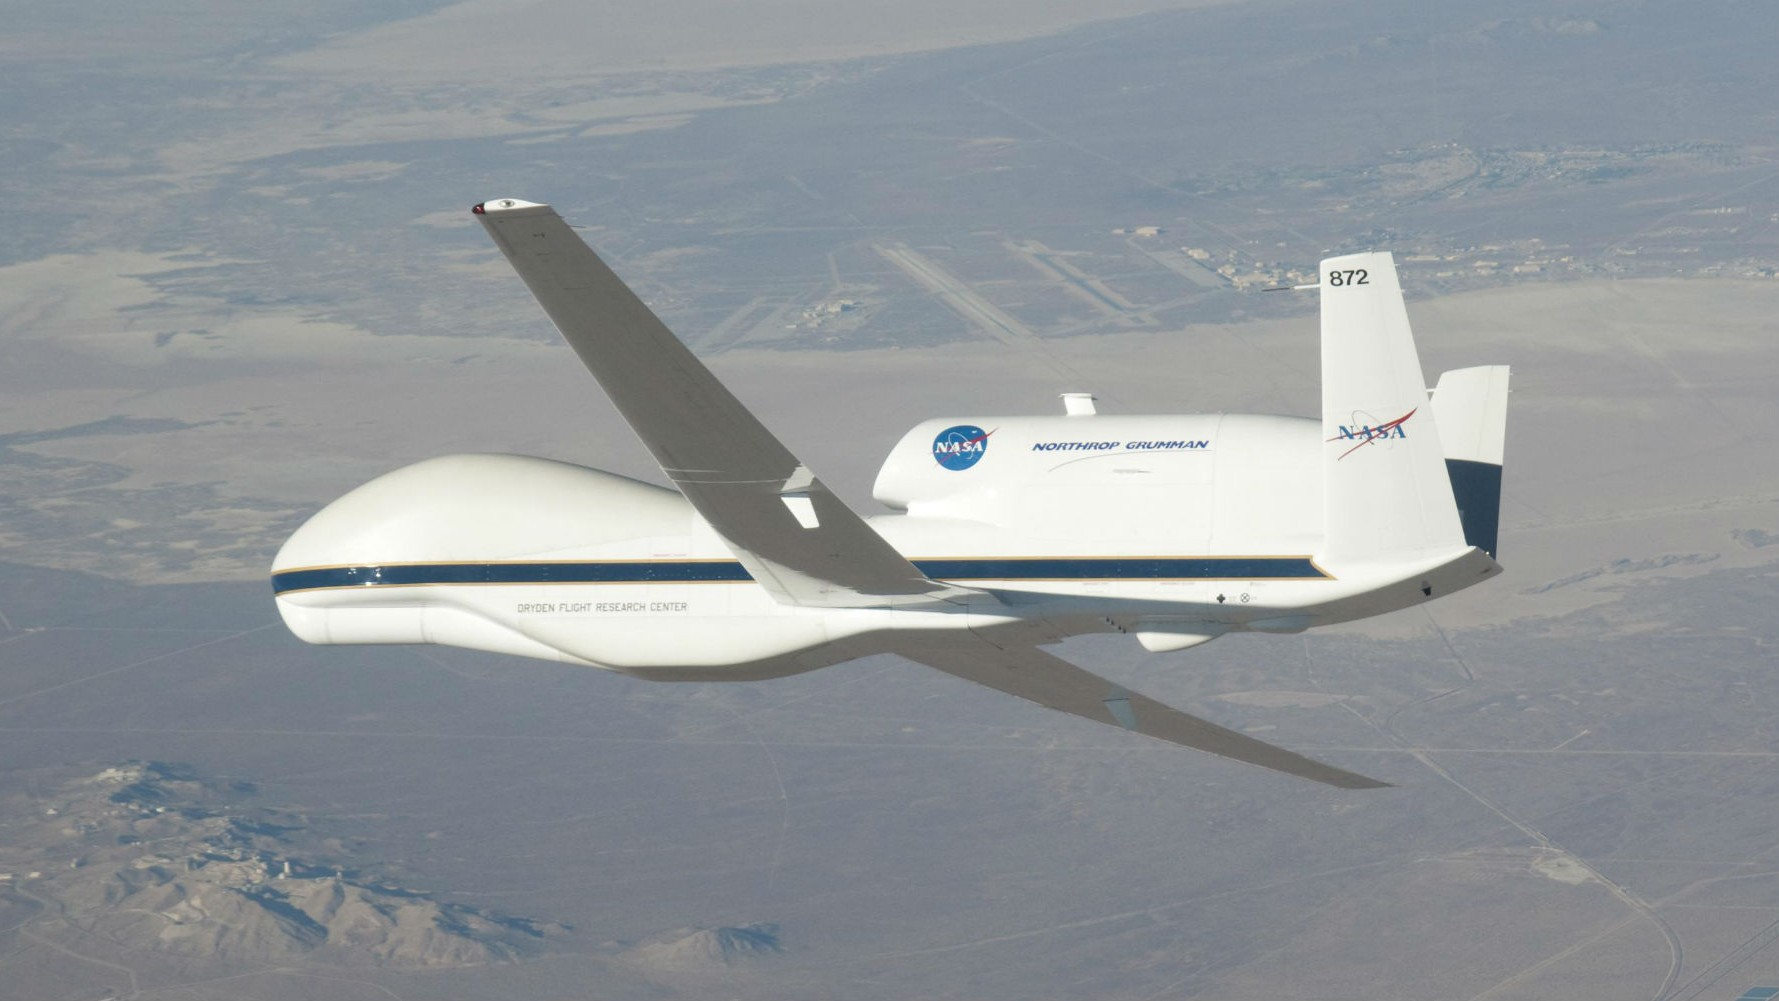 NASA Publicly Posted 'Drone Videos' Just Like the 'Hacked' Ones